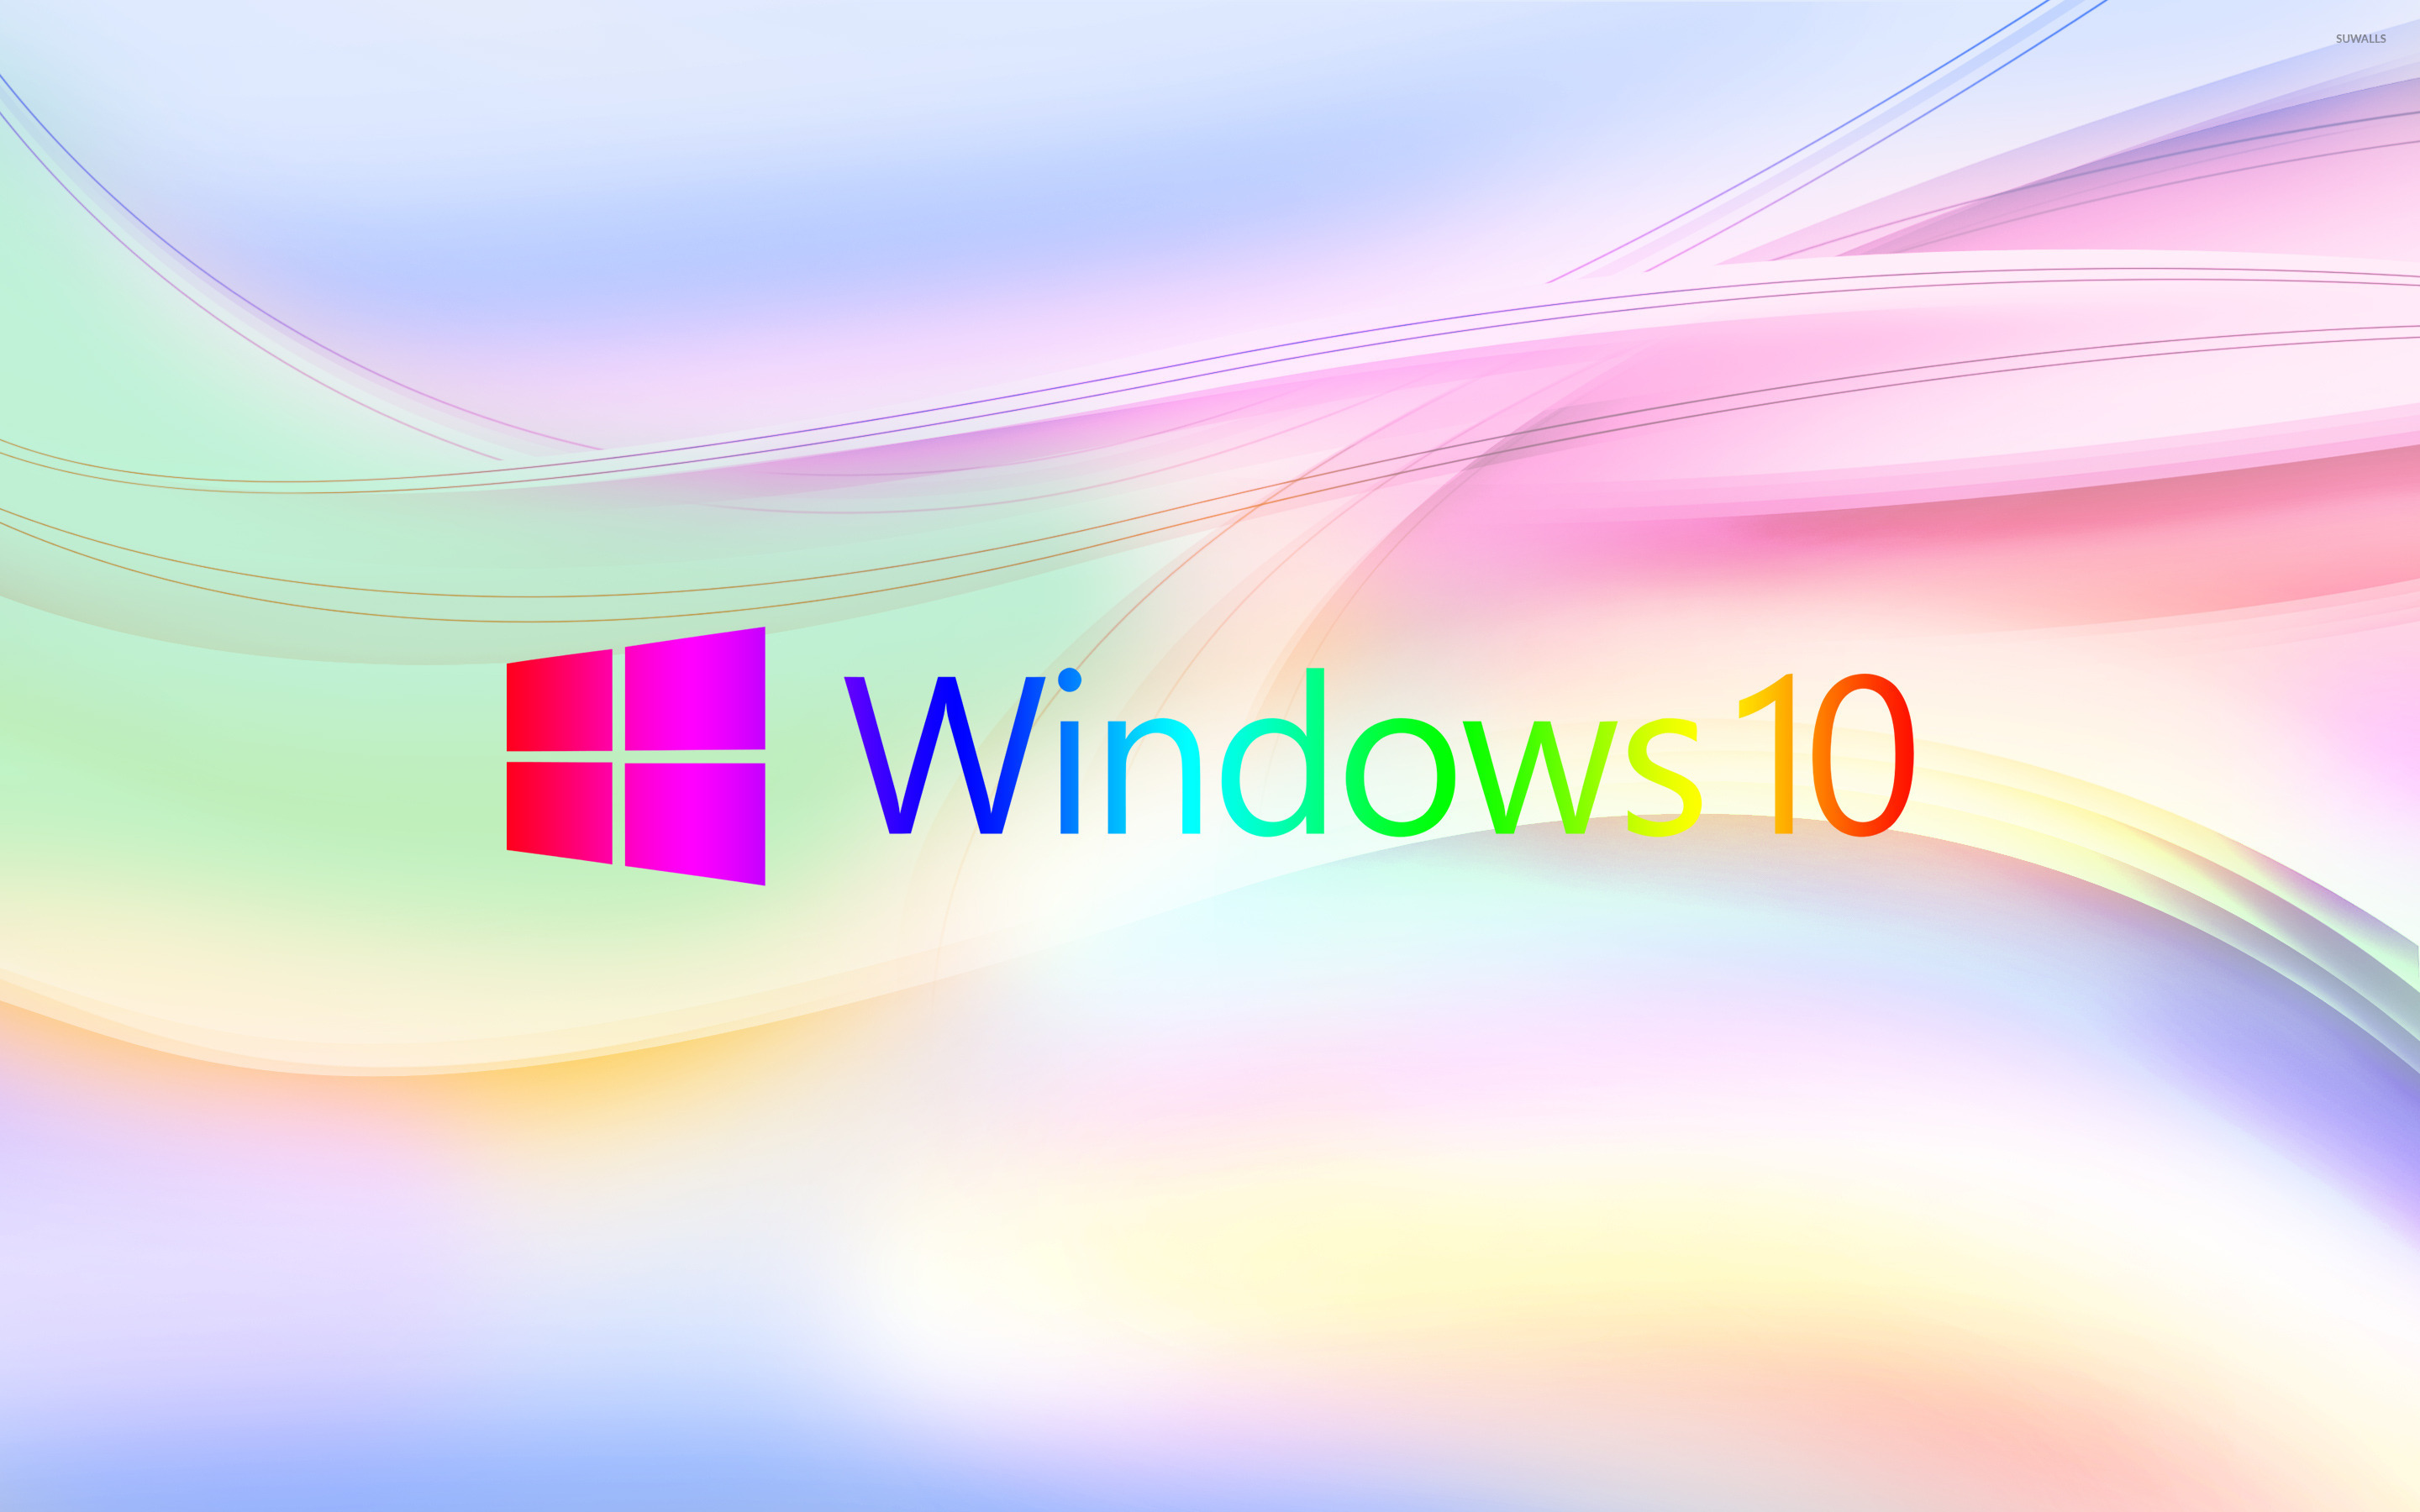 new windows wallpaper colorful - photo #9